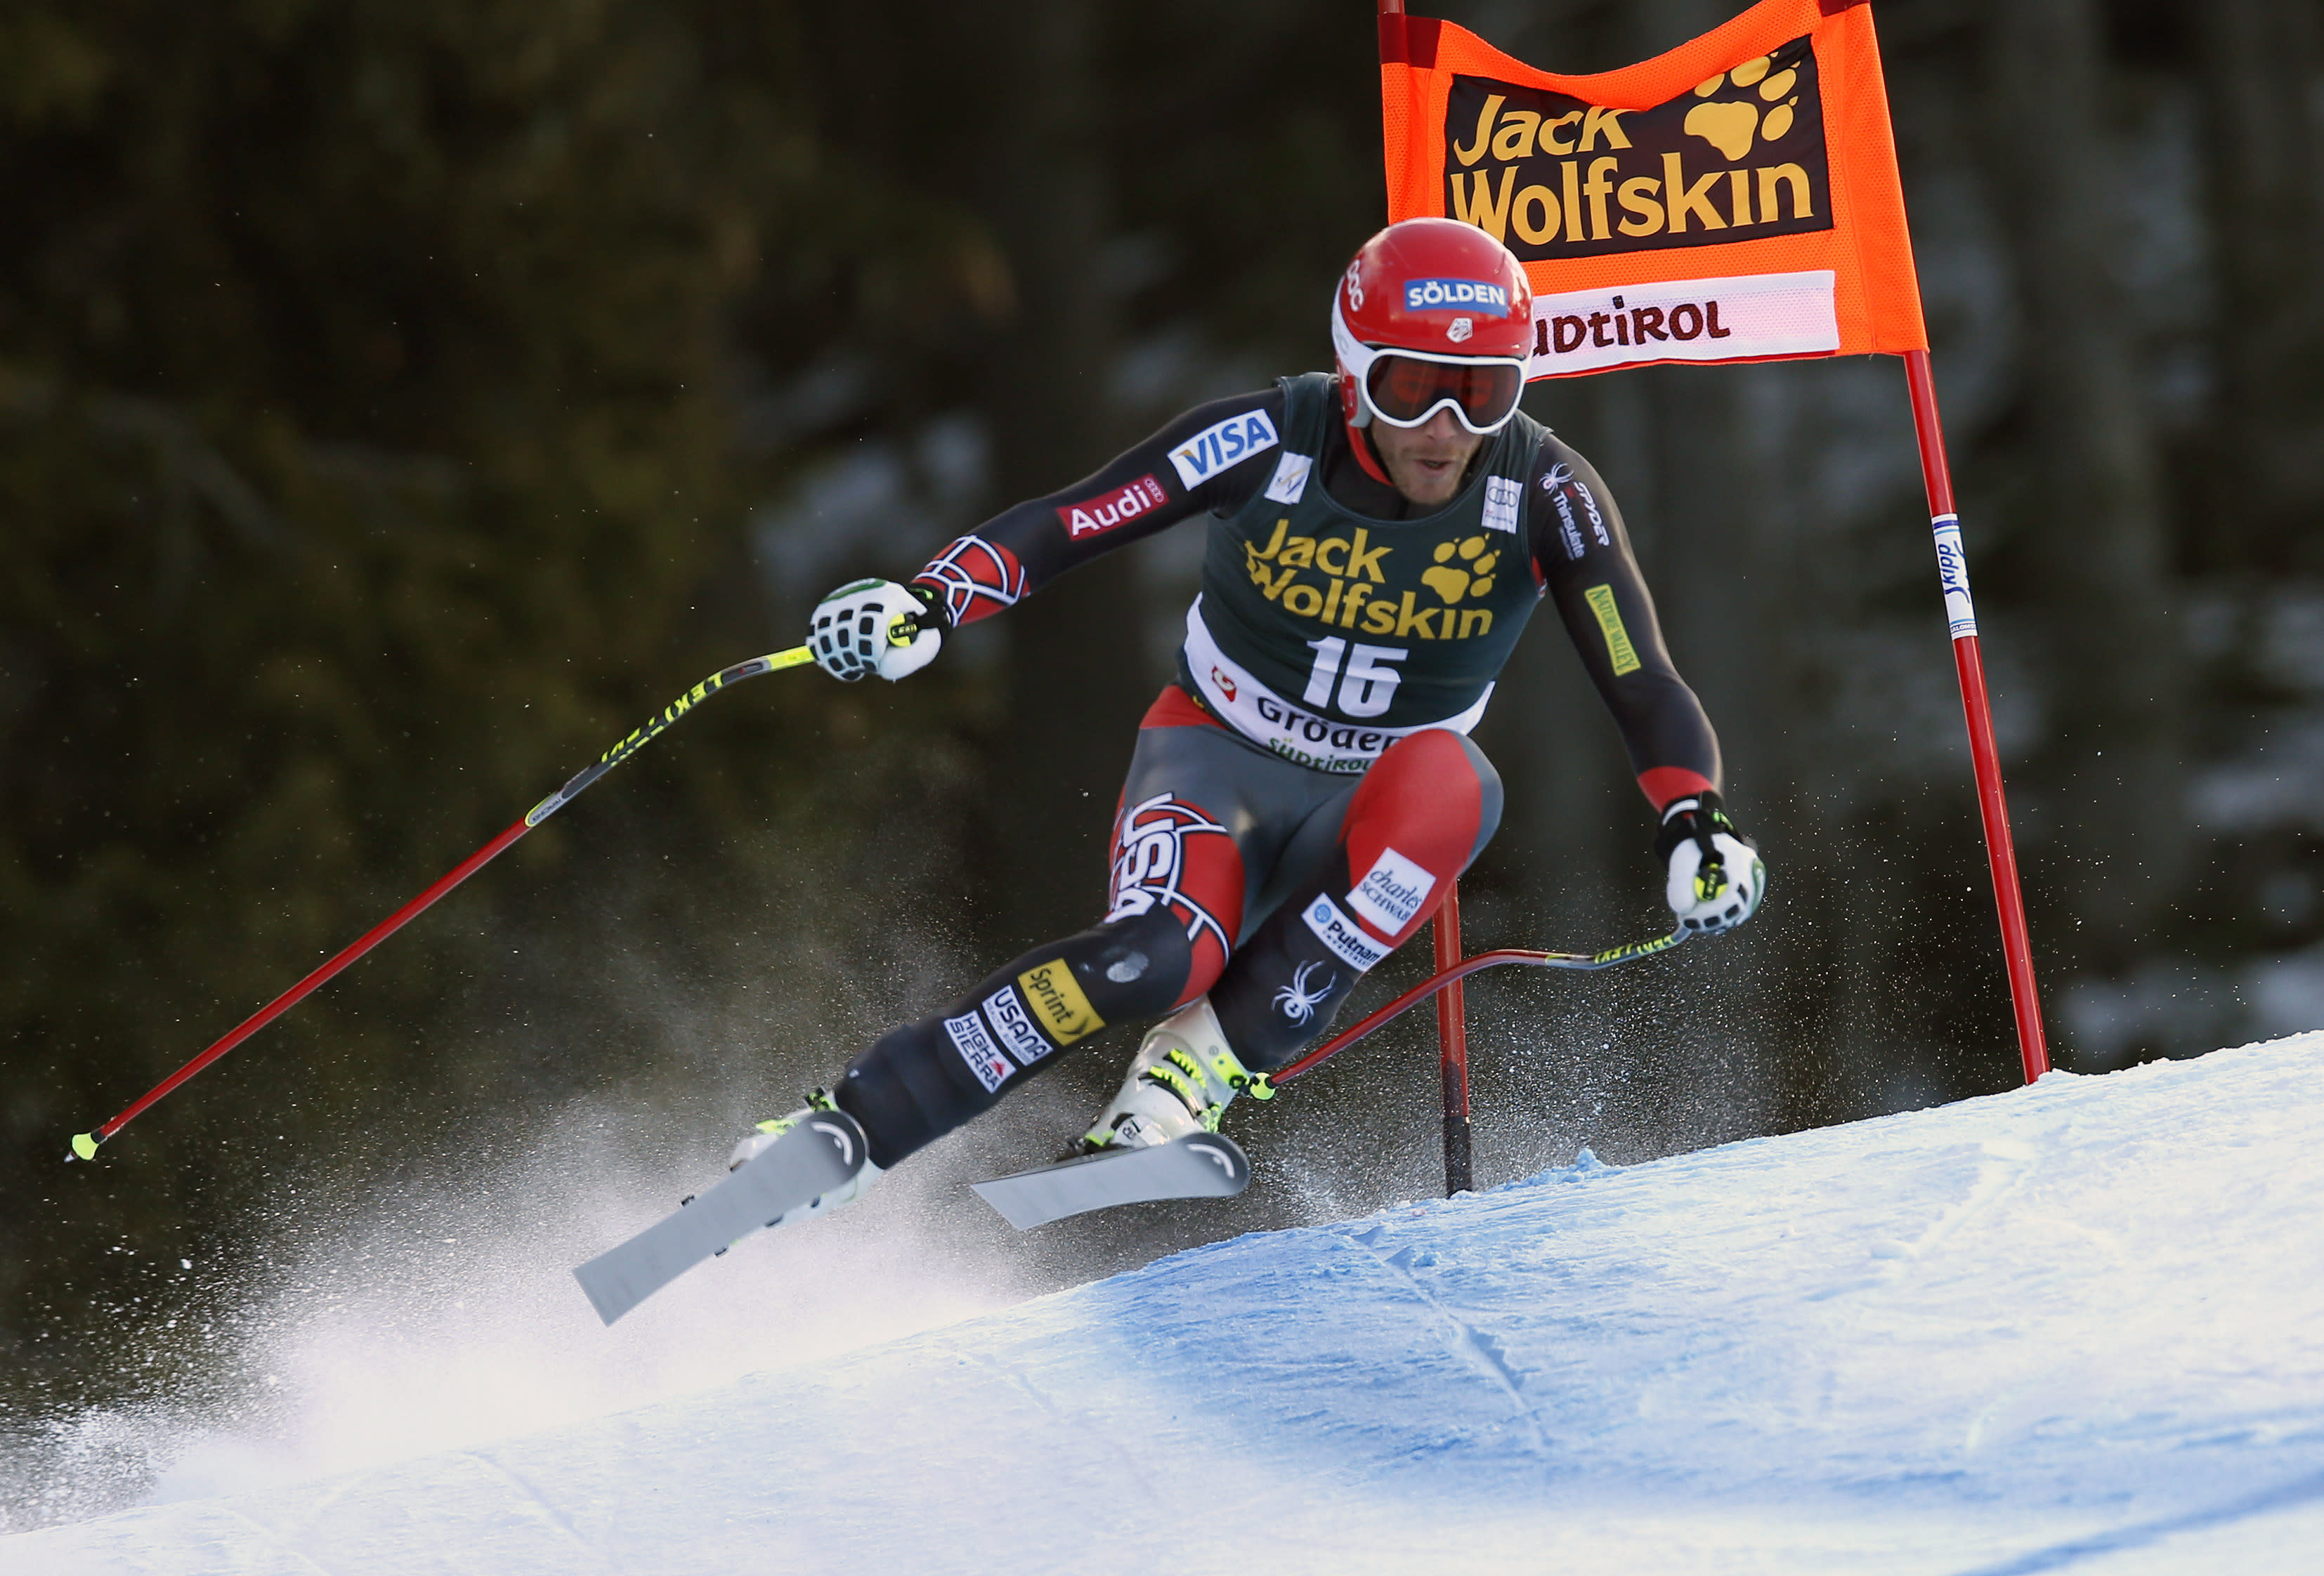 Bode Miller, of the United States, competes during an alpine ski, men's World Cup downhill, in Val Gardena, Italy, Saturday, Dec. 21, 2013. Jansrud finished in second place. (AP Photo/Marco Trovati)